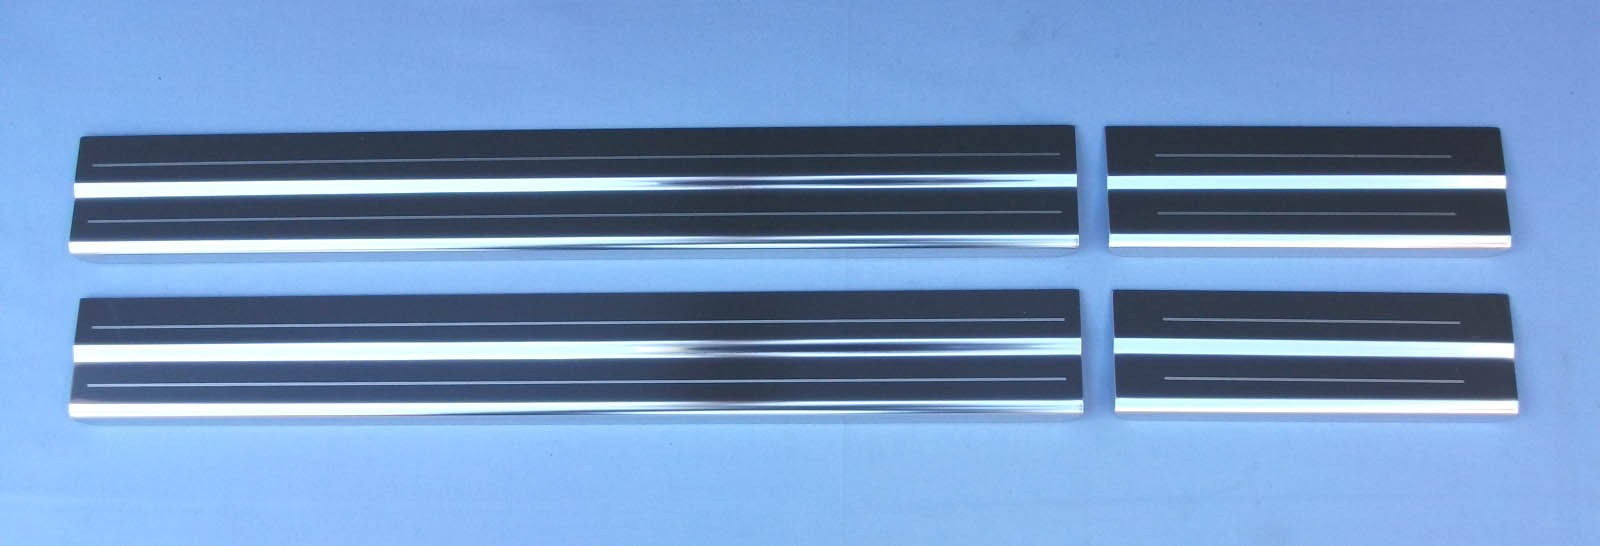 Nissan Note 04-12 Mk1 Chrome Door Sills Protectors Kick Plates Stainless Steel